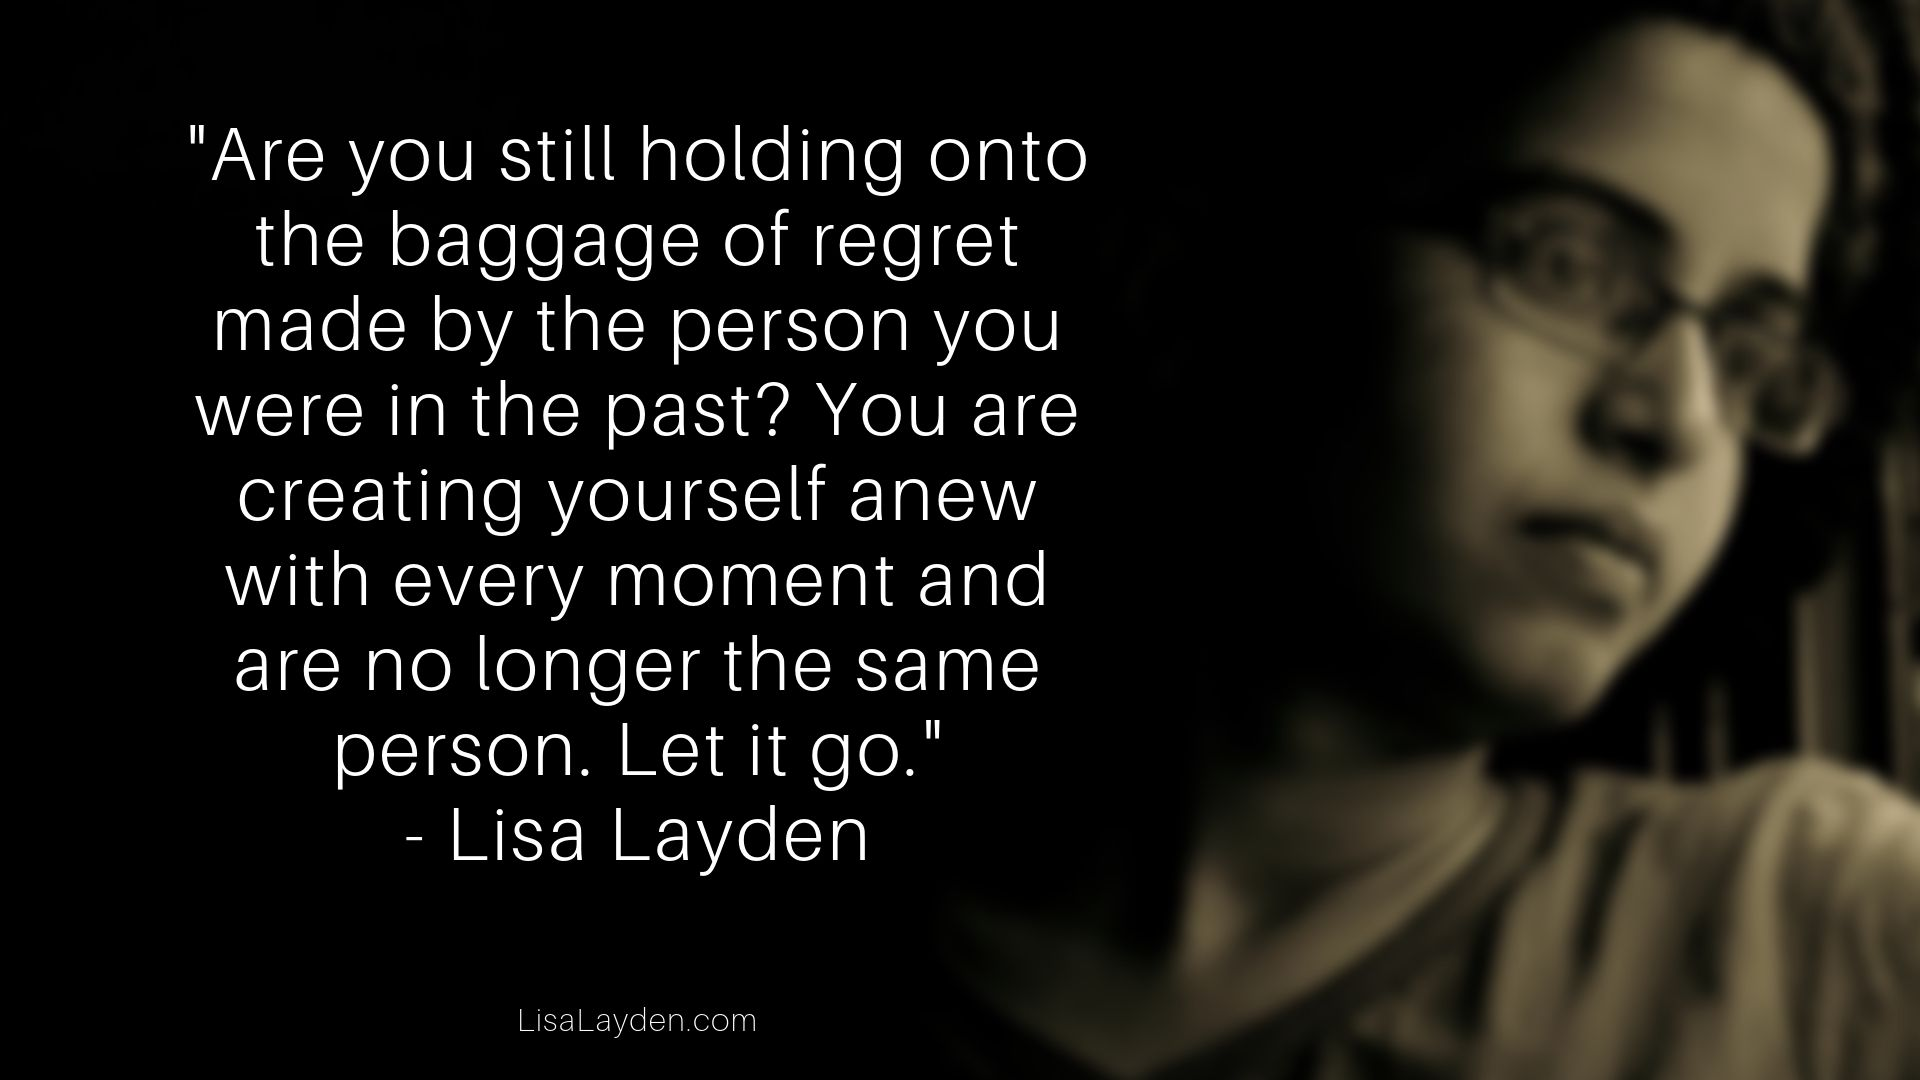 """quote - """"Are you still holding onto the baggage of regret made by the person you were in the past? You are creating yourself anew with every moment and are no longer the same person. Let it go."""" – Lisa Layden"""